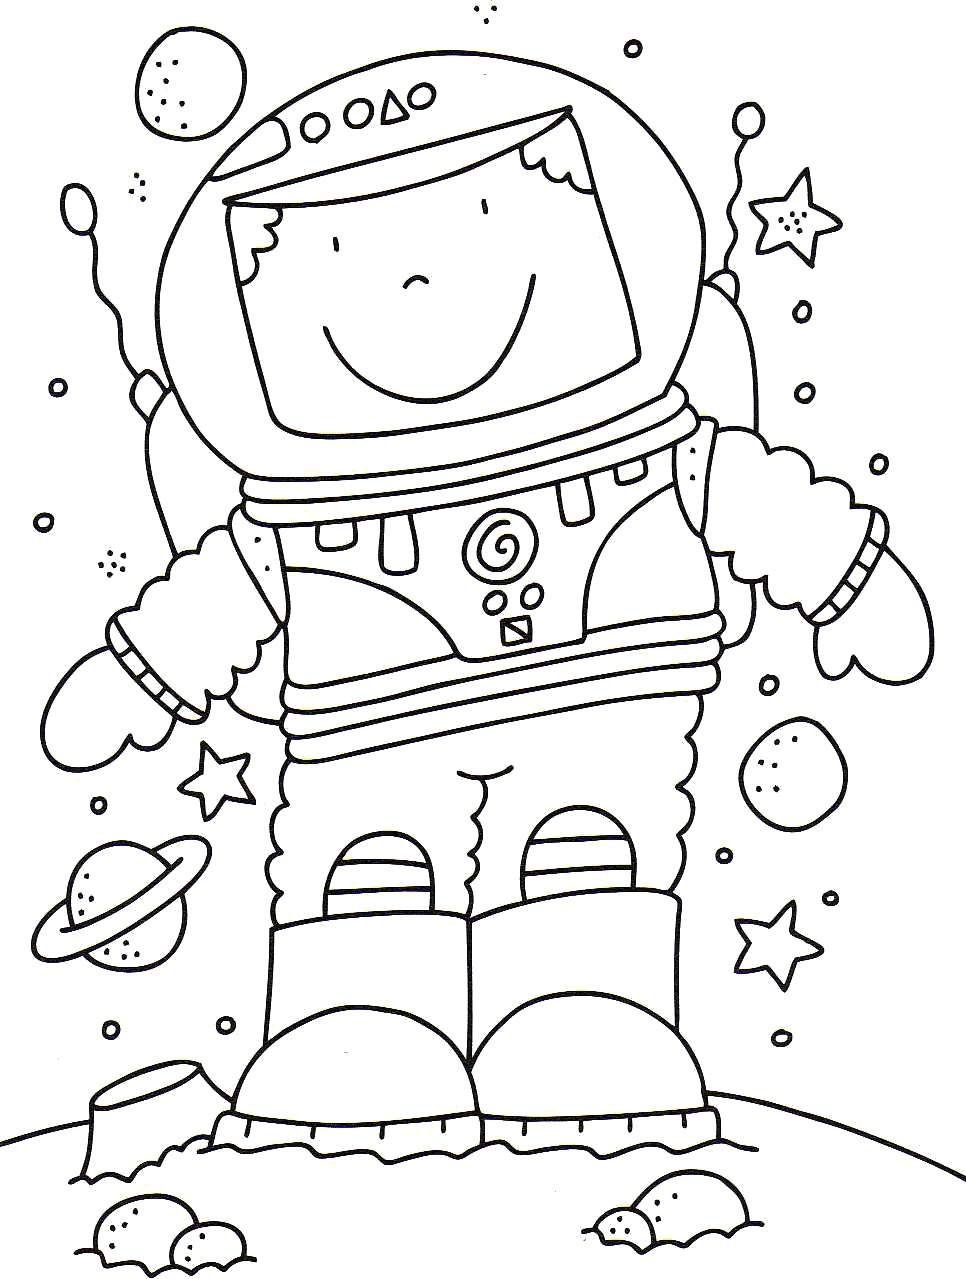 Astronaut Coloring Pages Google Search Space Coloring Sheet Solar System Coloring Pages Space Coloring Pages